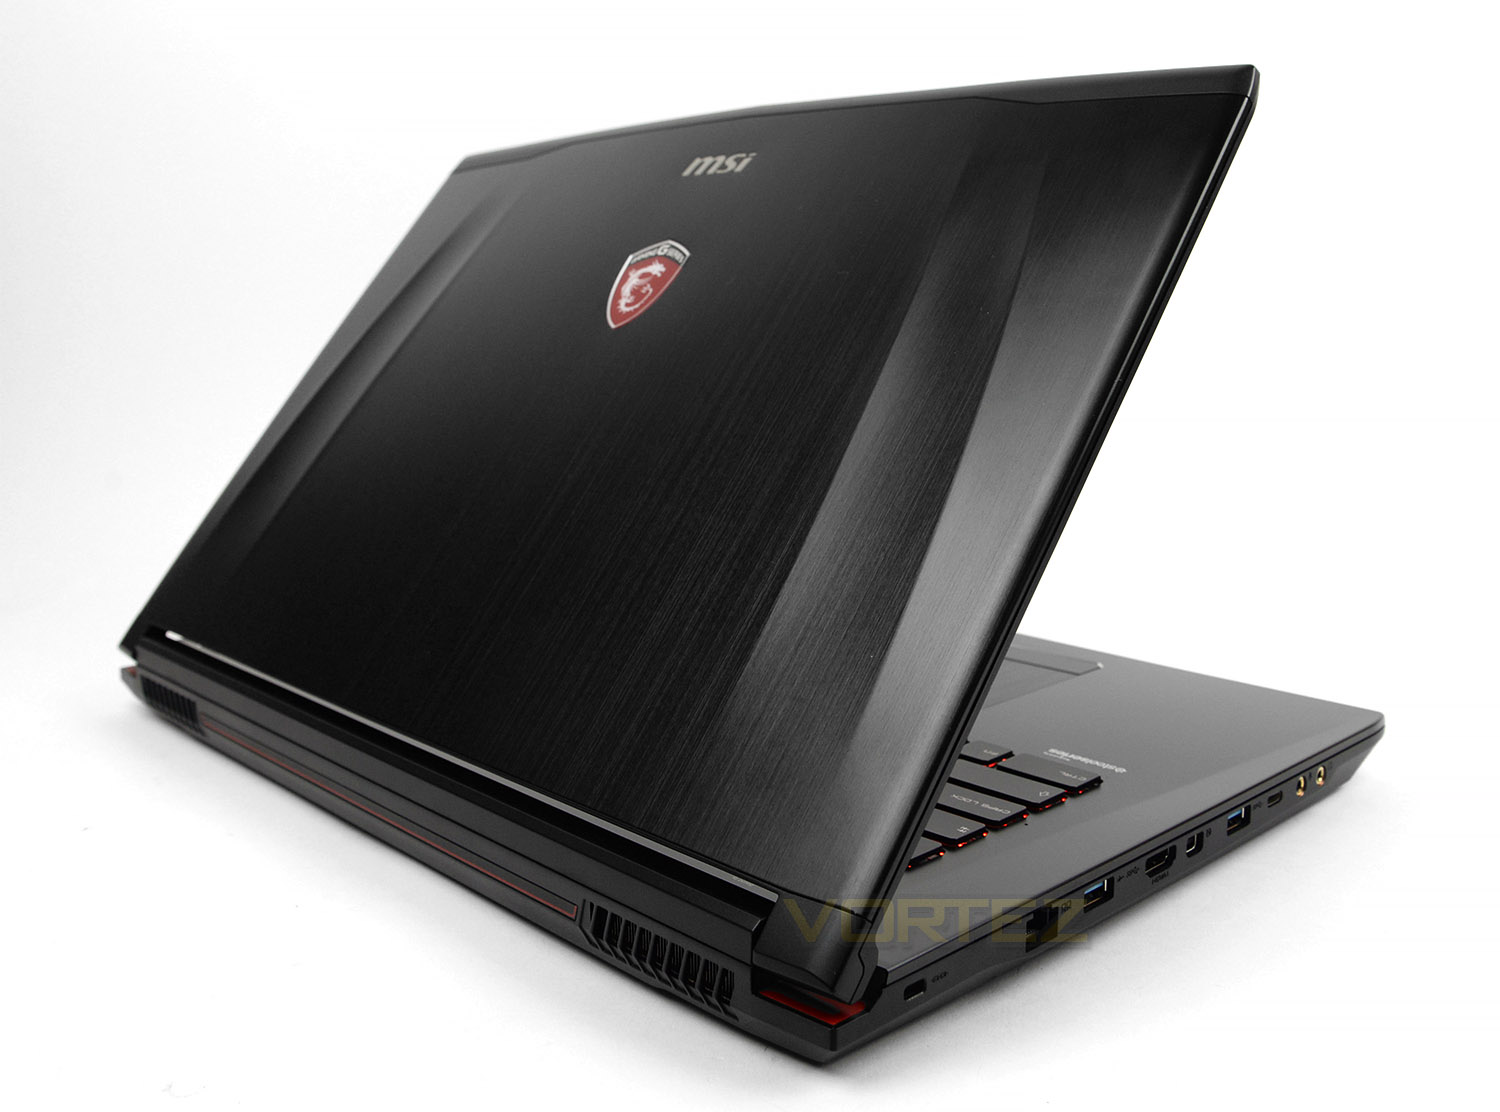 Msi Ge72 6qf Apache Pro Review Introduction